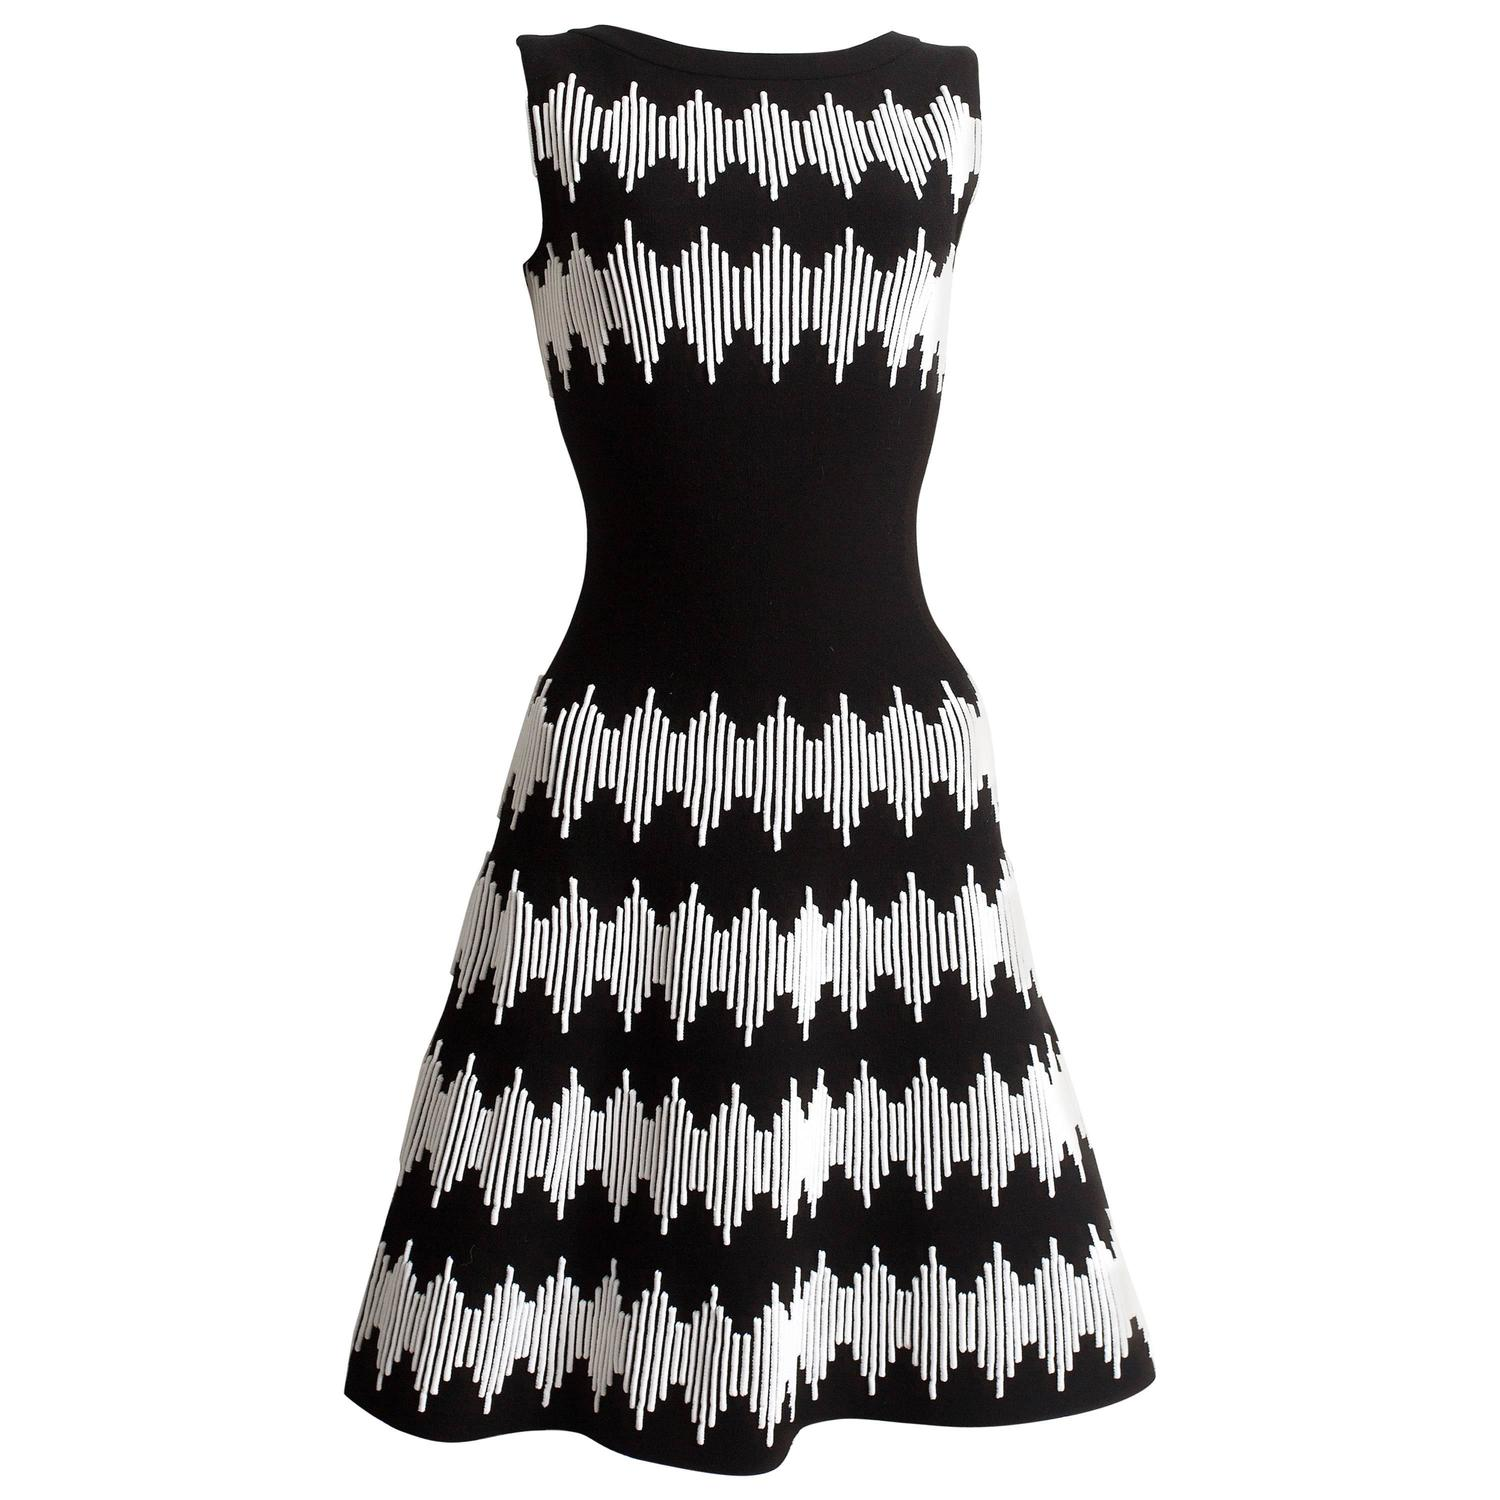 Alaia black and white striped flared dress at 1stdibs